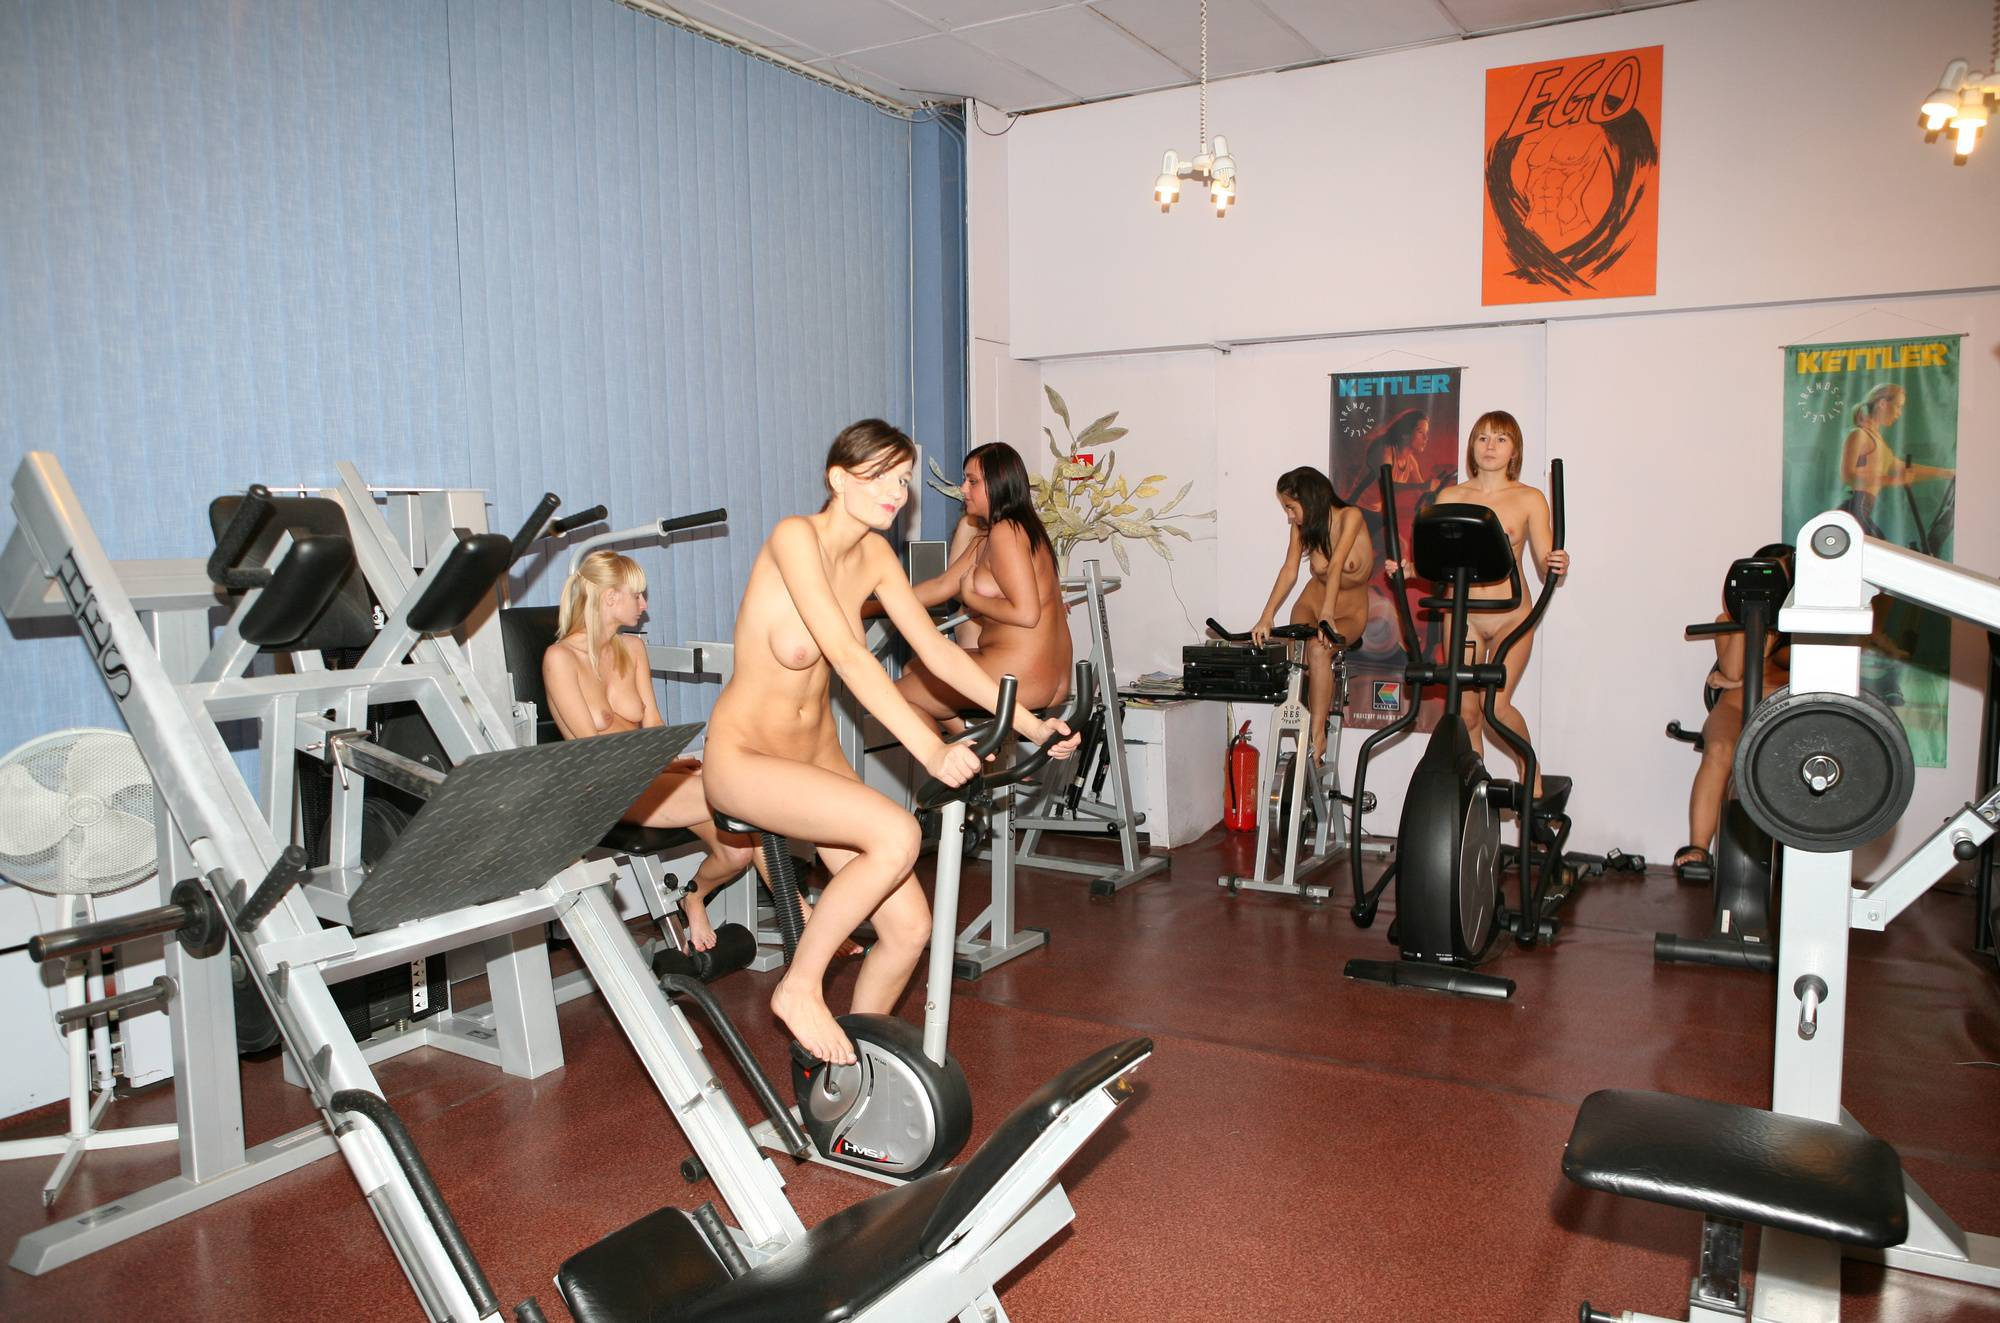 Pure Nudism Gallery-Gymnasts Riding The Bike - 1